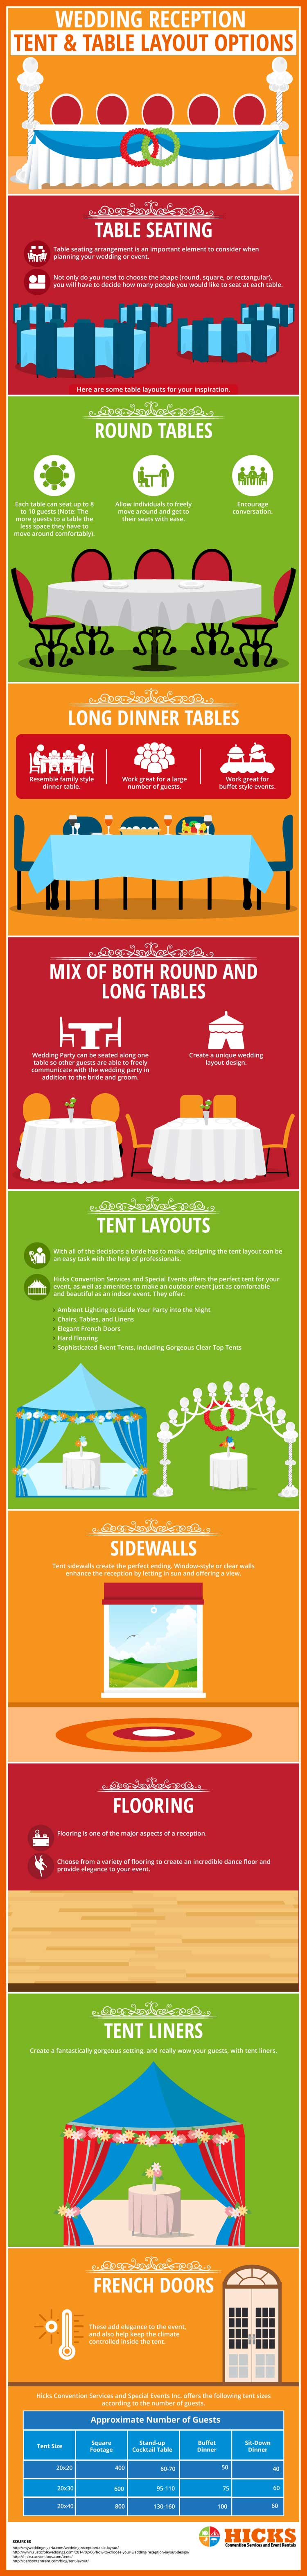 infographic tent sizes layouts